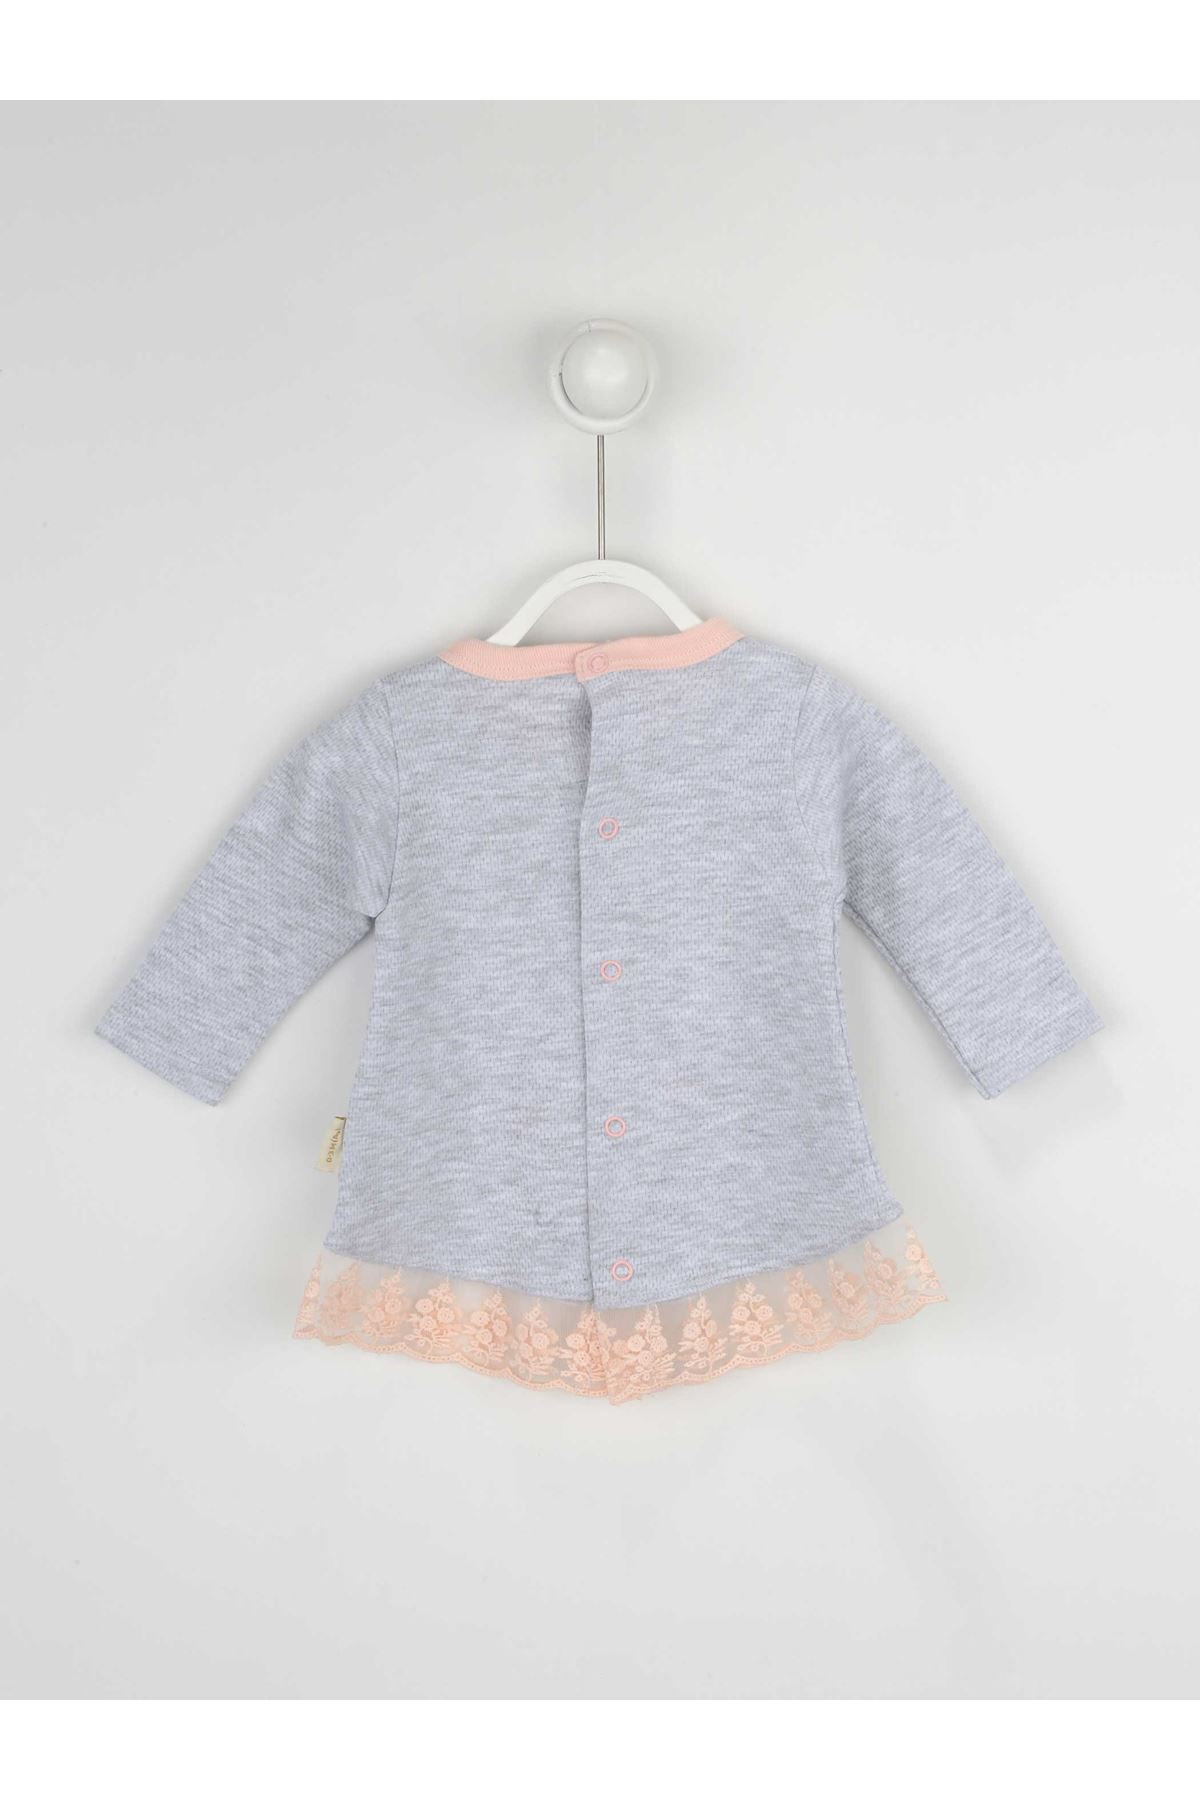 Powder Pink Grey Baby Girl Daily 3 Piece Suit Set Cotton Daily Seasonal Casual Wear Girls Babies Suit Outfit Models